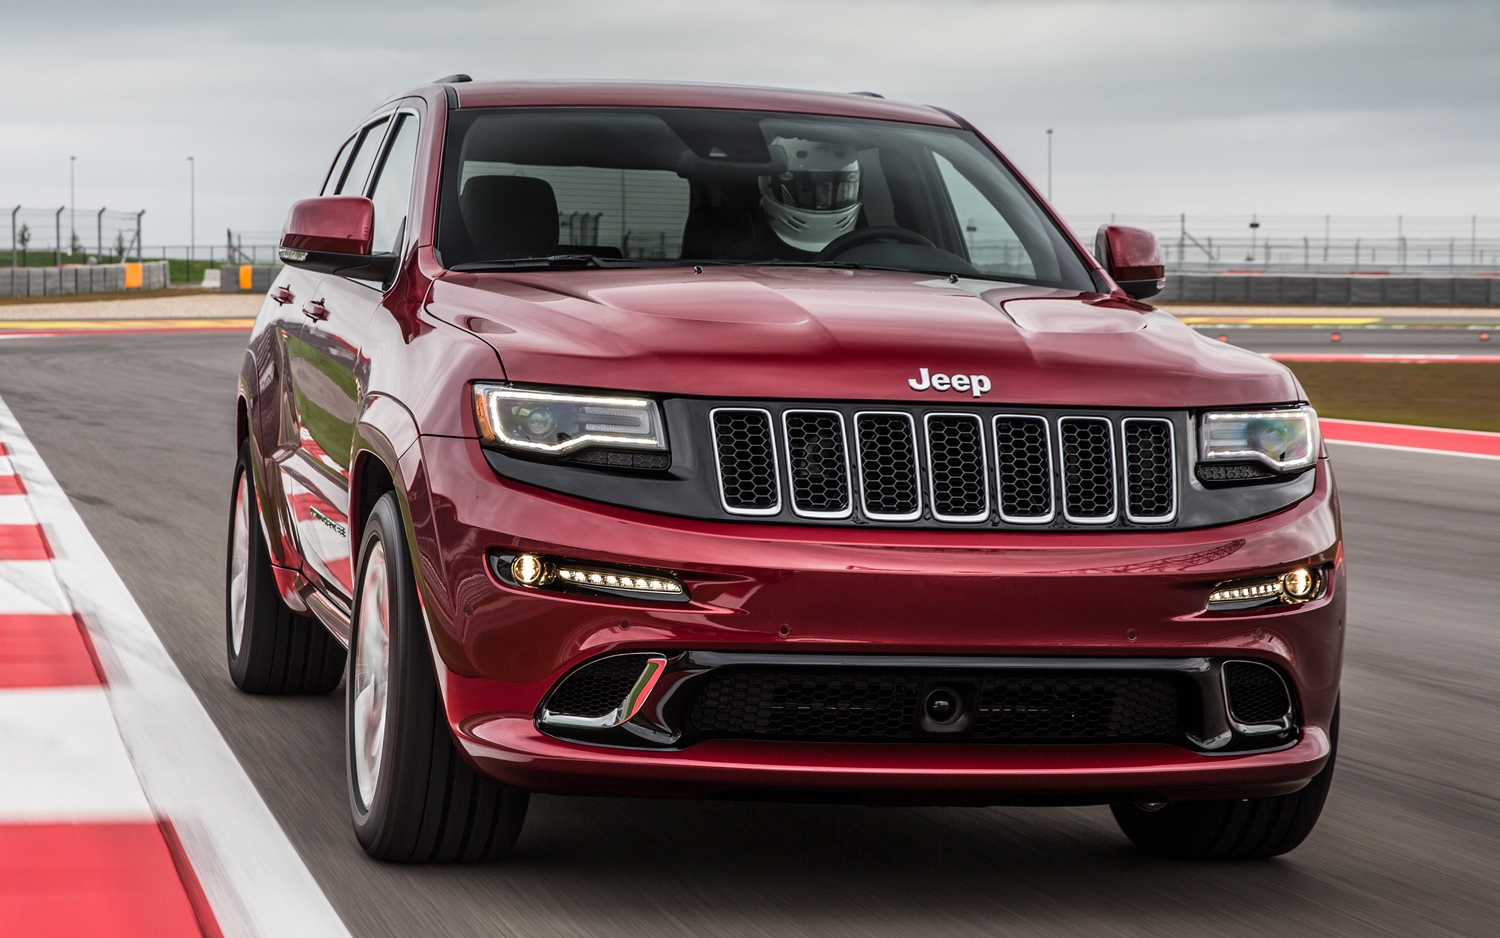 2014-jeep-grand-cherokee-srt-front-view-06